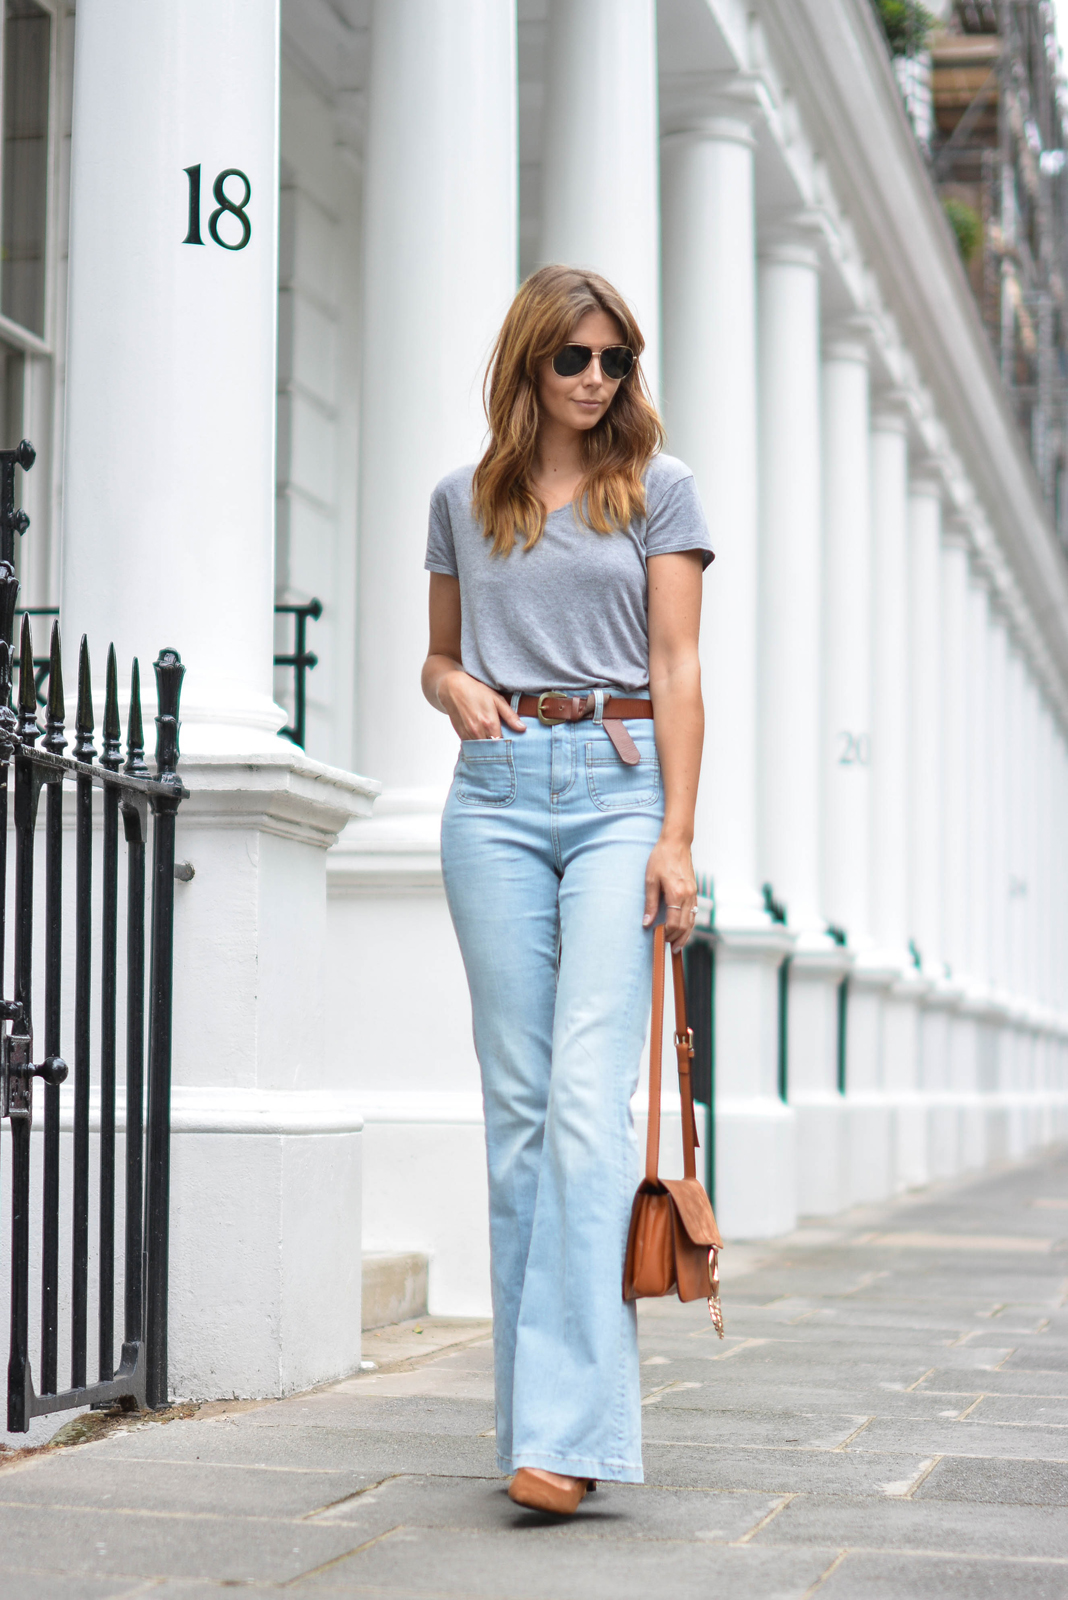 EJSTYLE wears Grey basic v neck t shirt, aviator sungasses,Tan suede leather chloe style Faye bag by Jessica Buurman, High waisted flare jeans, tan knot belt, tan suede heels